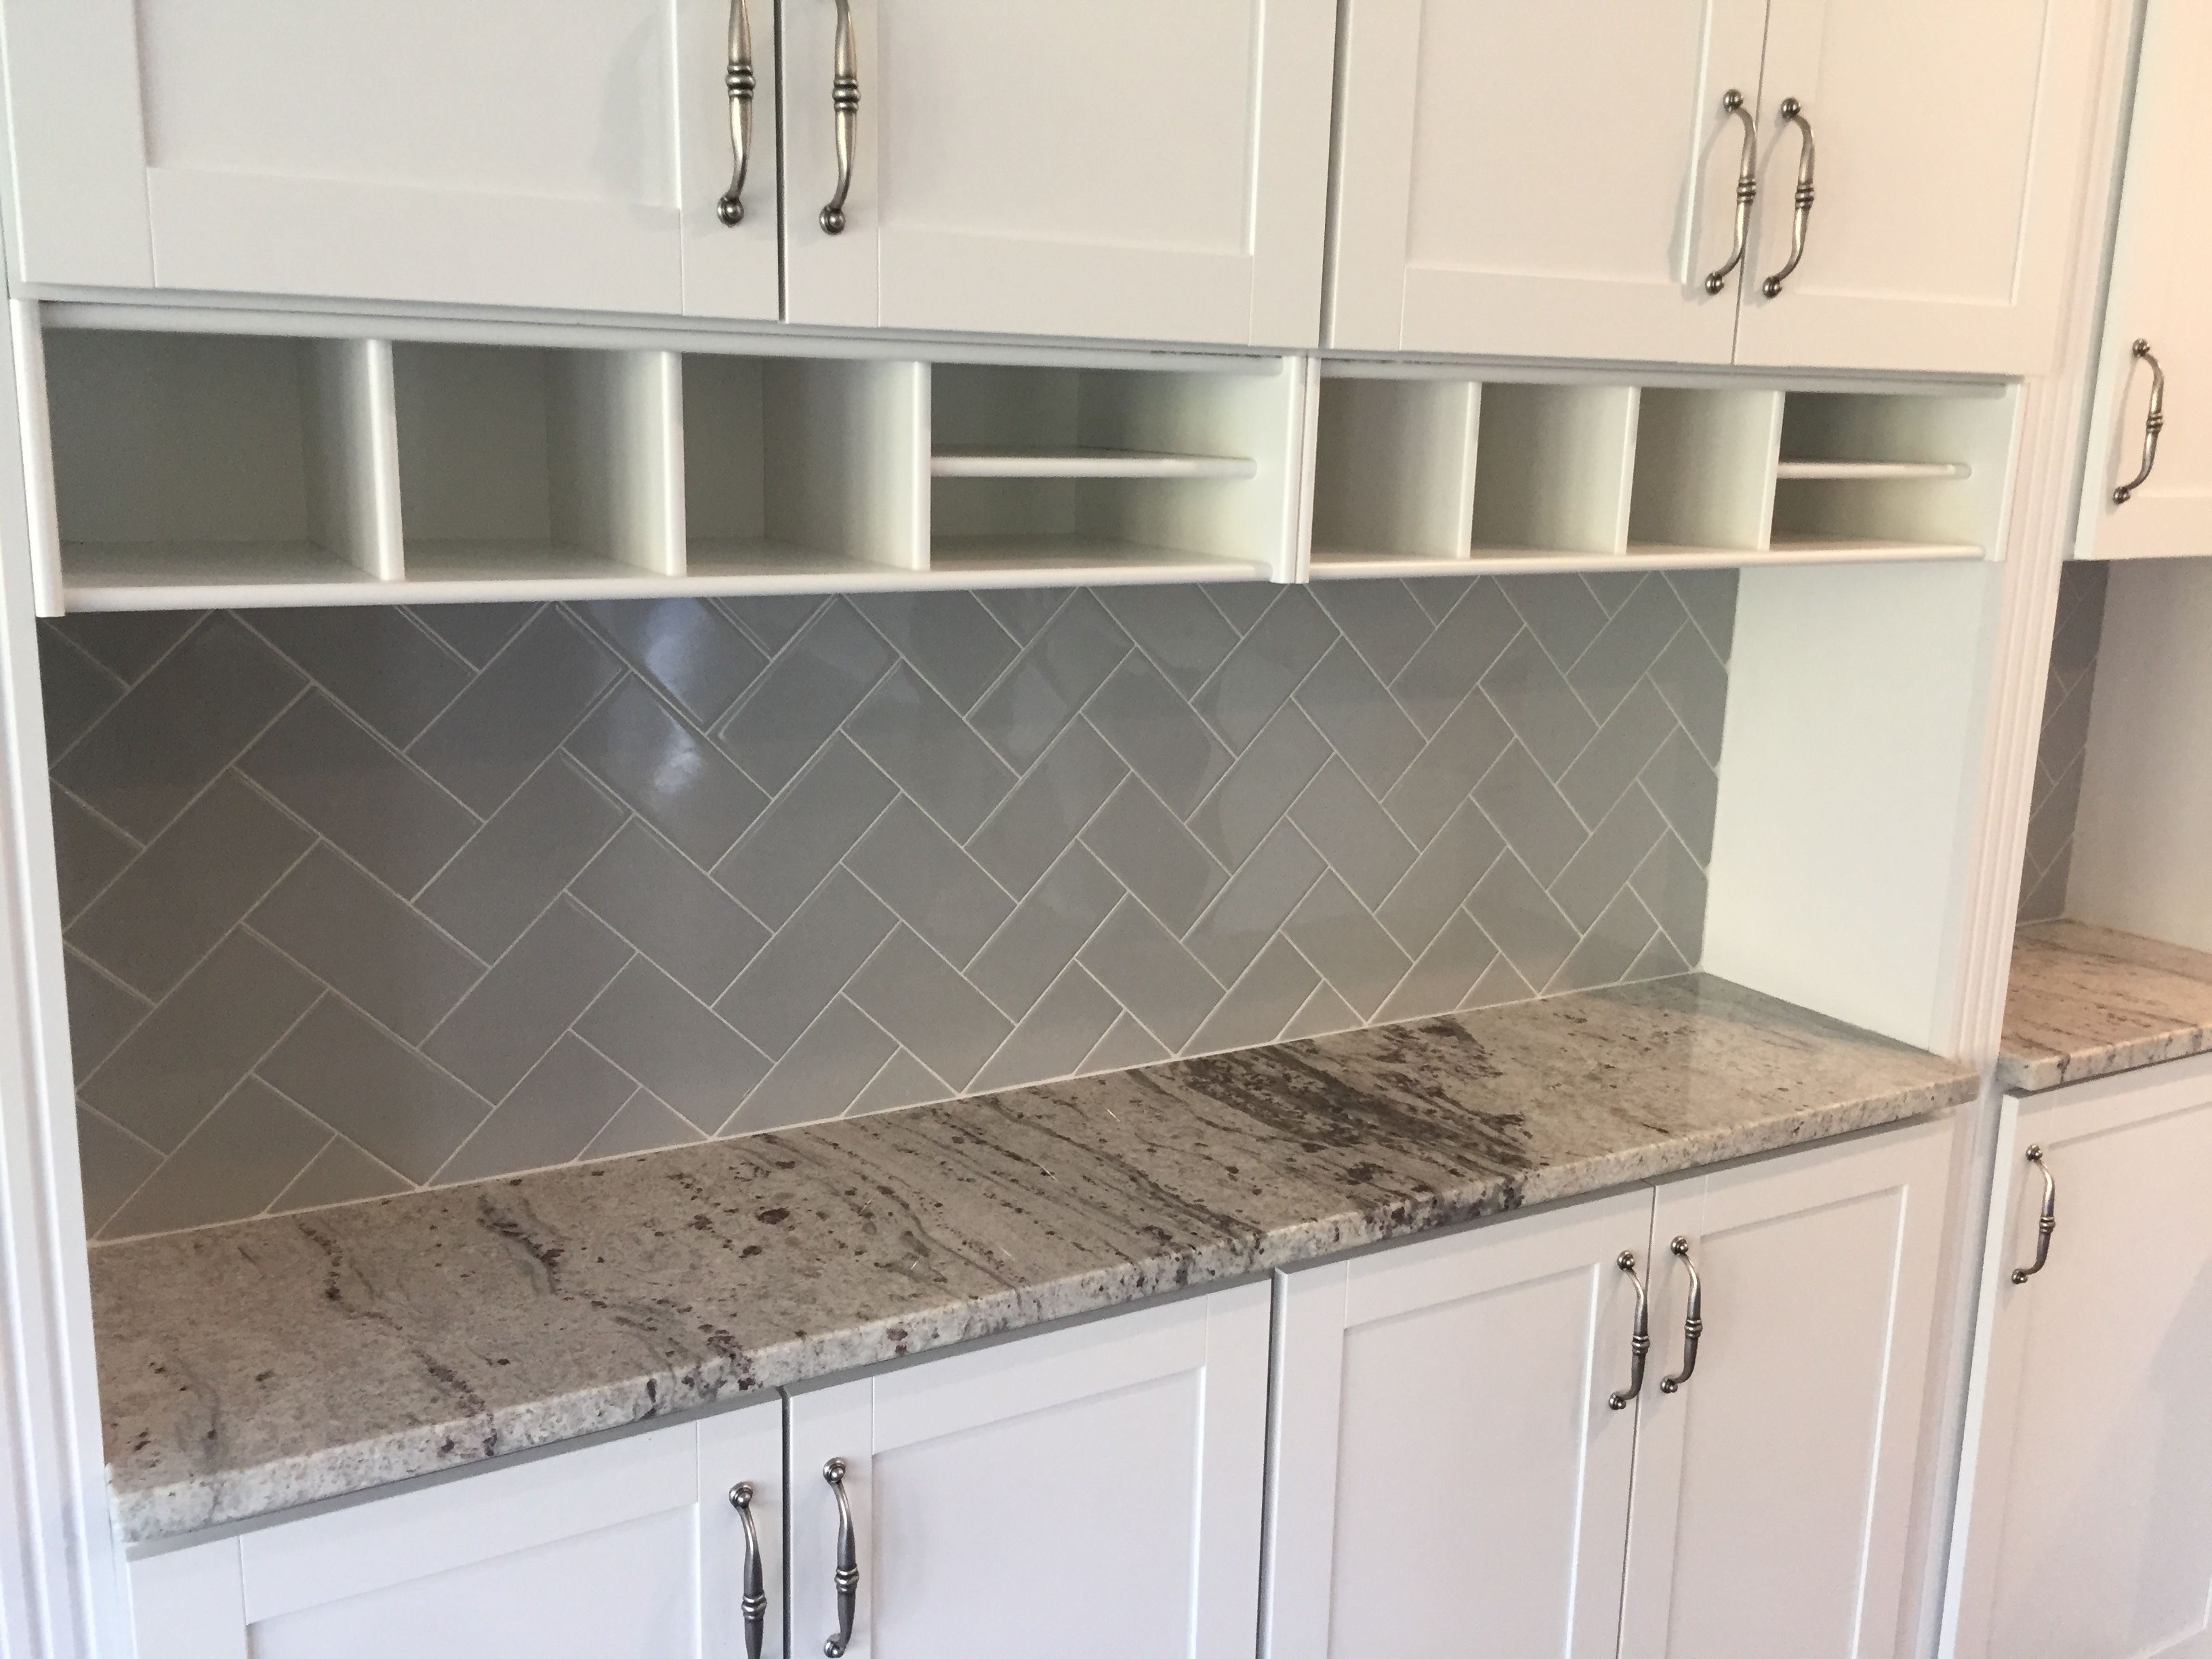 - Rittenhouse Square 3x6 Desert Gray Back Splash Tile In Herringbone